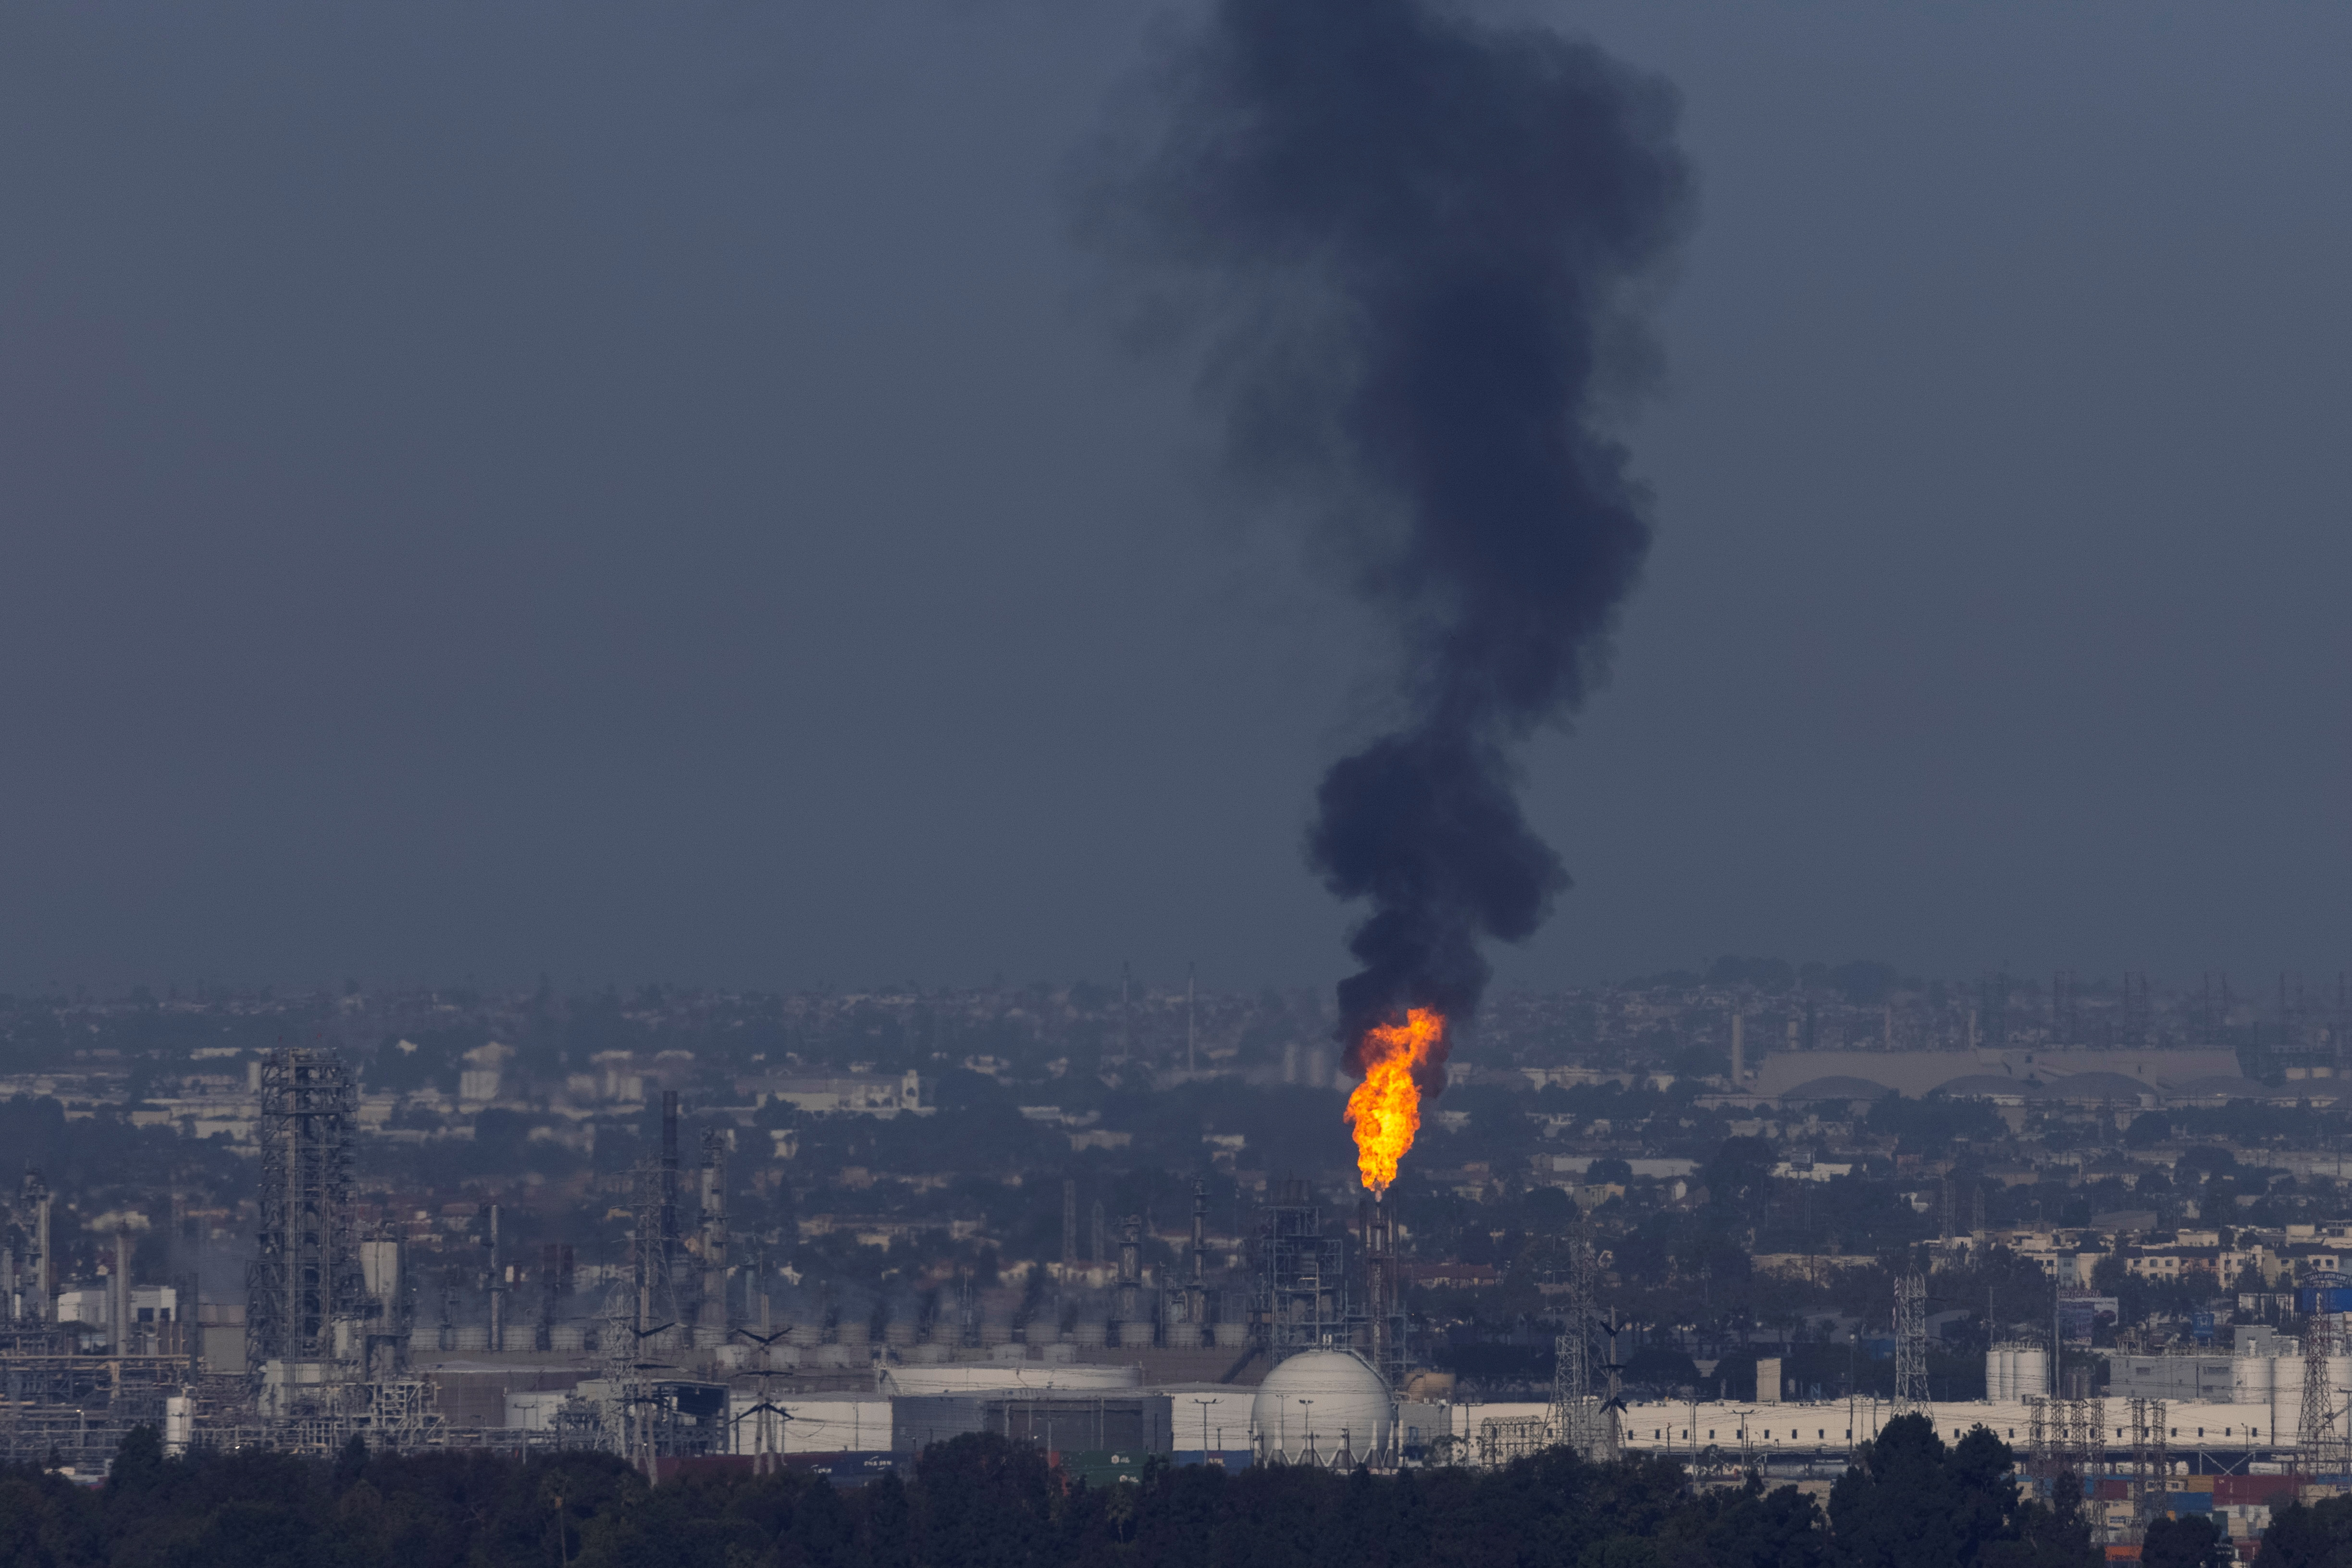 An oil refinery conducts a flaring operation in Carson, California, U.S., September 22, 2021. REUTERS/Mike Blake